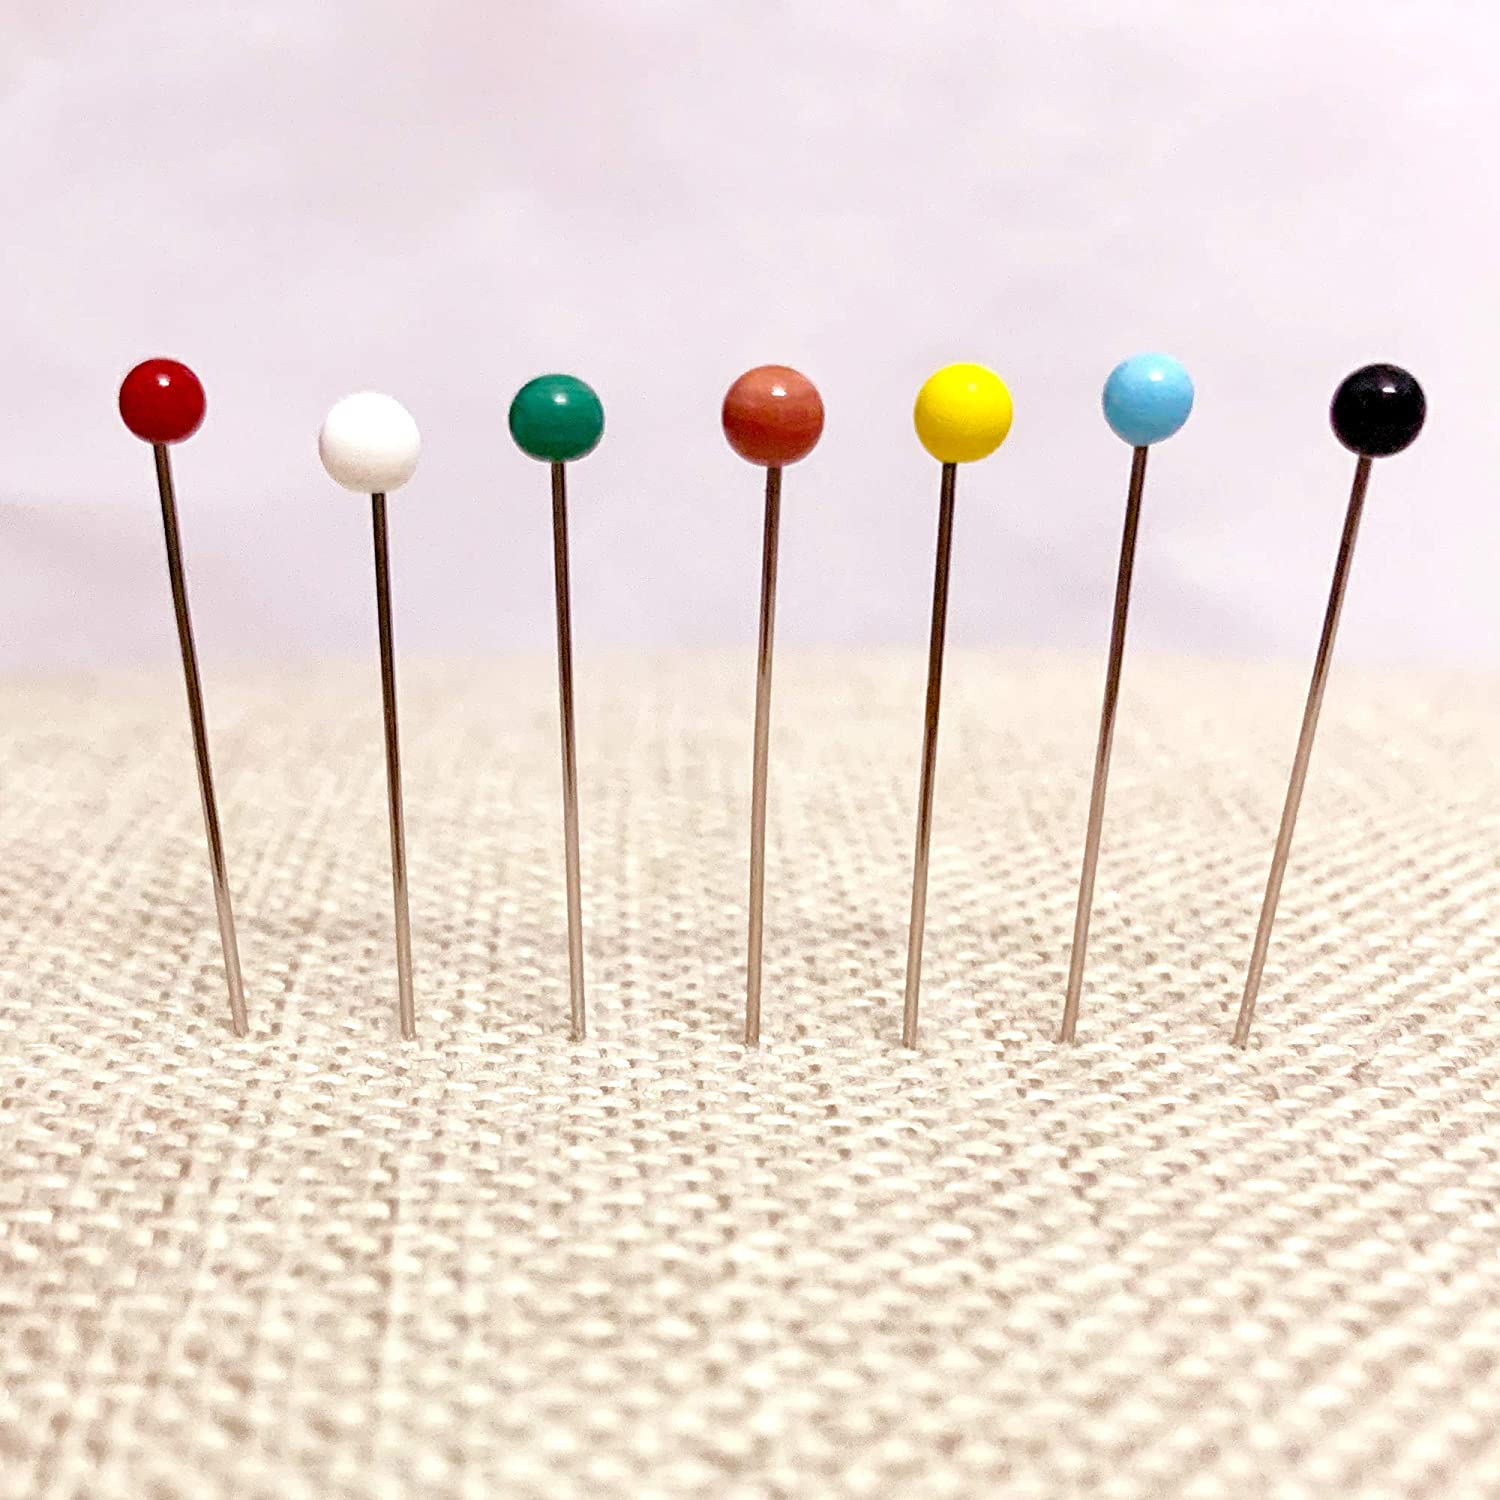 38mm yuanyuanz 500 Pieces Sewing Pins Glass Ball Multicolor Head Pins Straight Quilting Pins with Pearl Heads for Dressmaker Jewelry Decoration